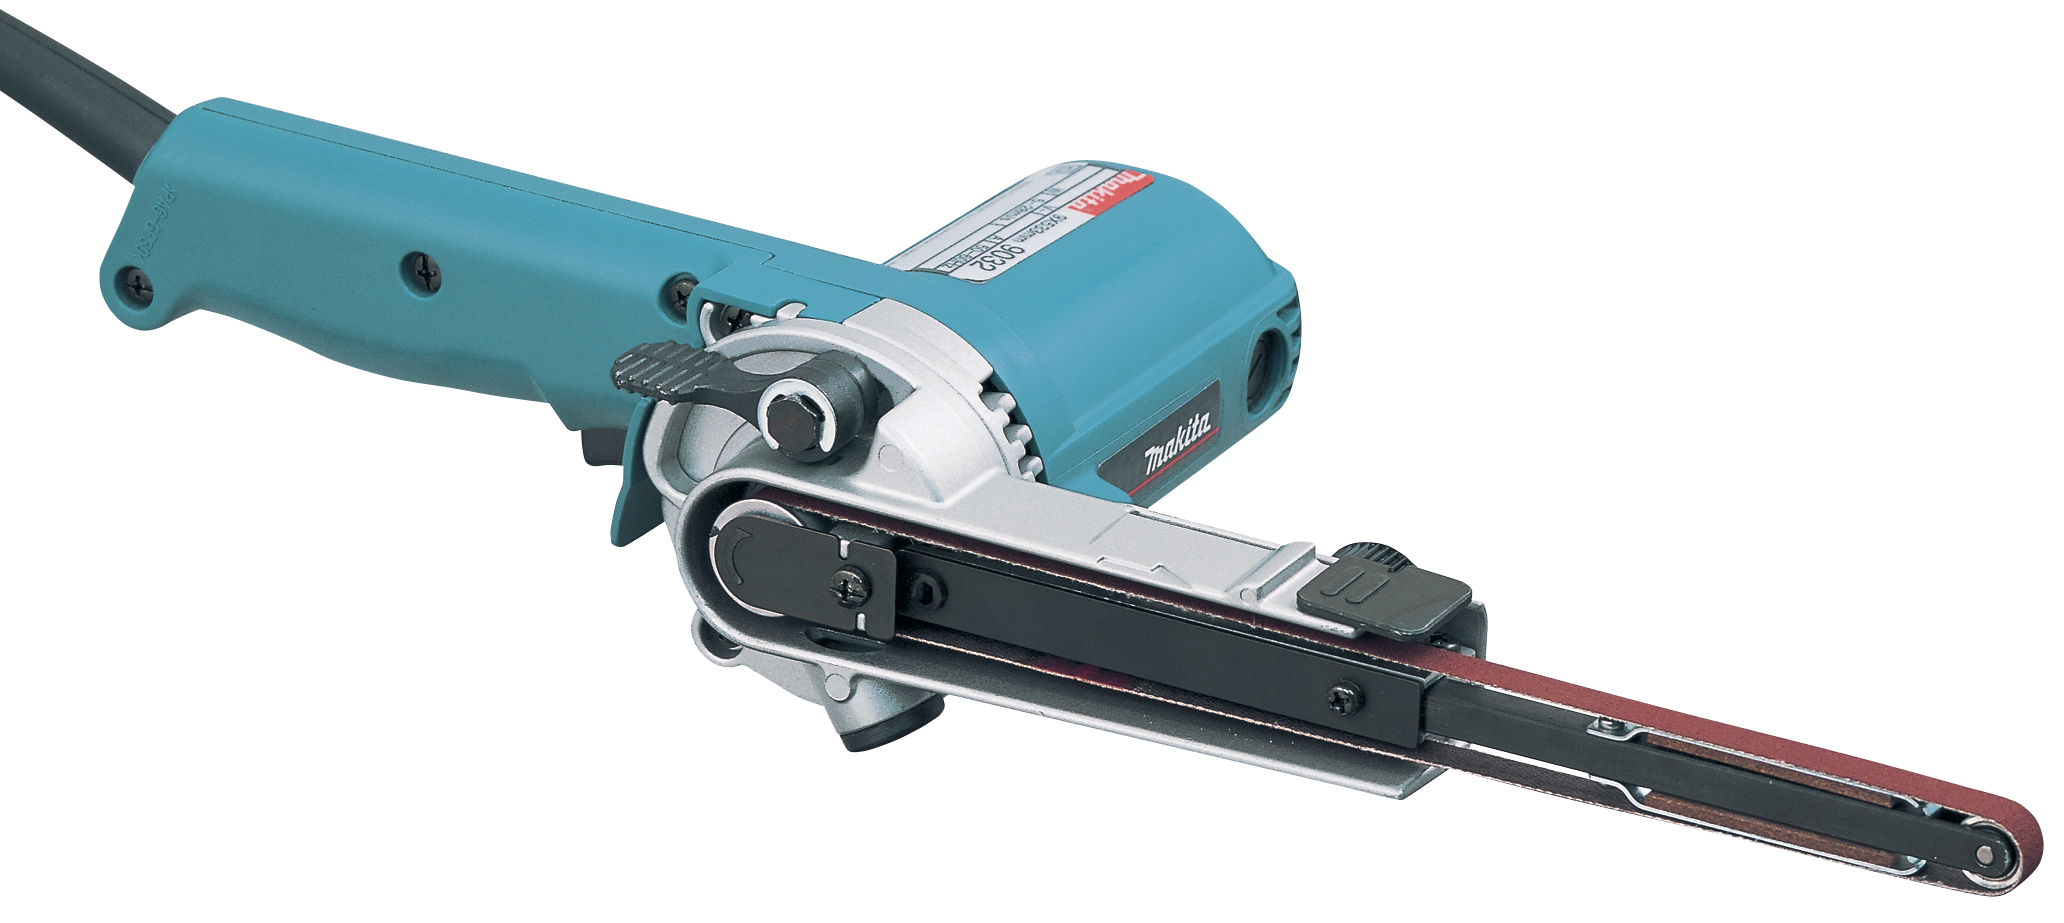 makita power tools south africa belt sander 9032. Black Bedroom Furniture Sets. Home Design Ideas